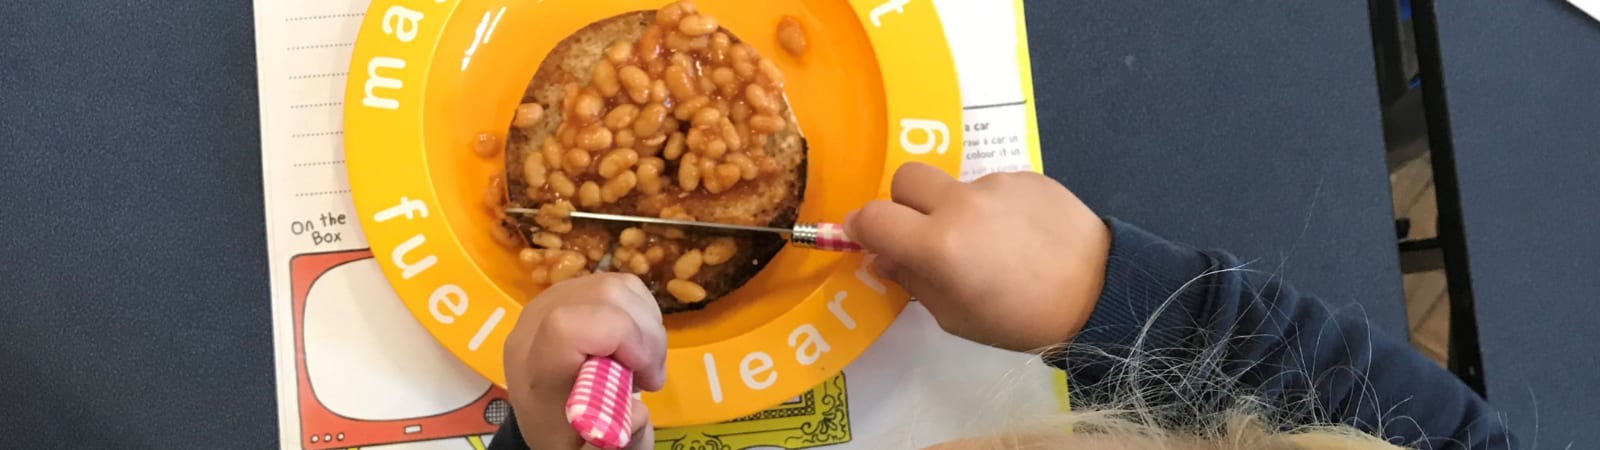 Press release: New report finds free school breakfasts could generate up to £2.7bn for economy